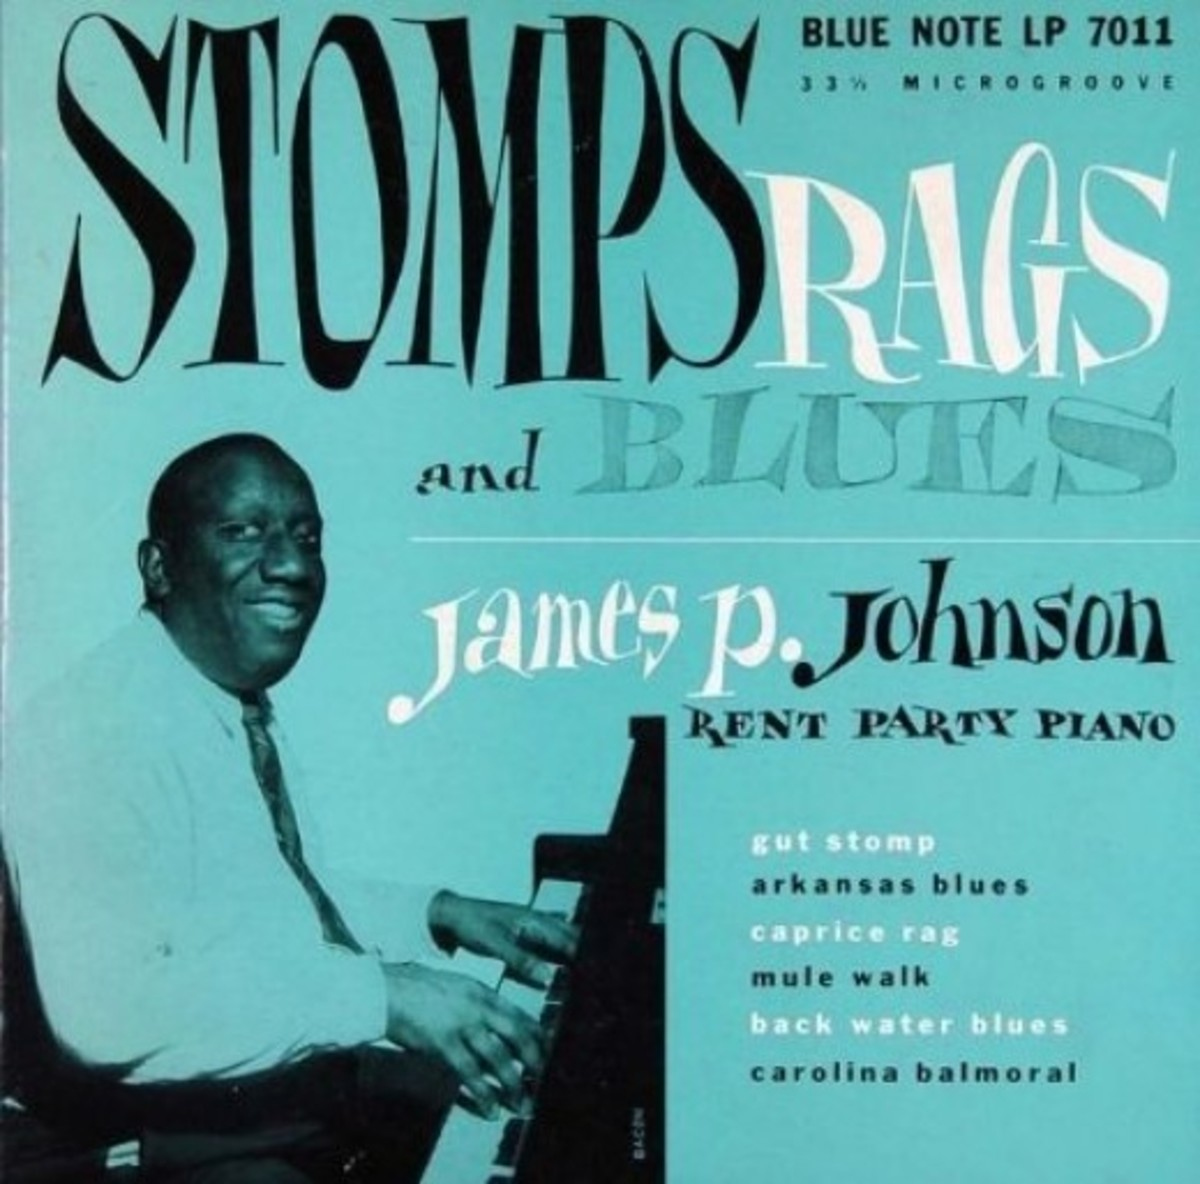 """James P Johnson """"Stomps Rags and Blues Rent Party Piano"""" BLP 7011 10"""" LP Vinyl Microgroove Record (1951) Album Cover Design by Paul Bacon Photo by Francis Wolff"""